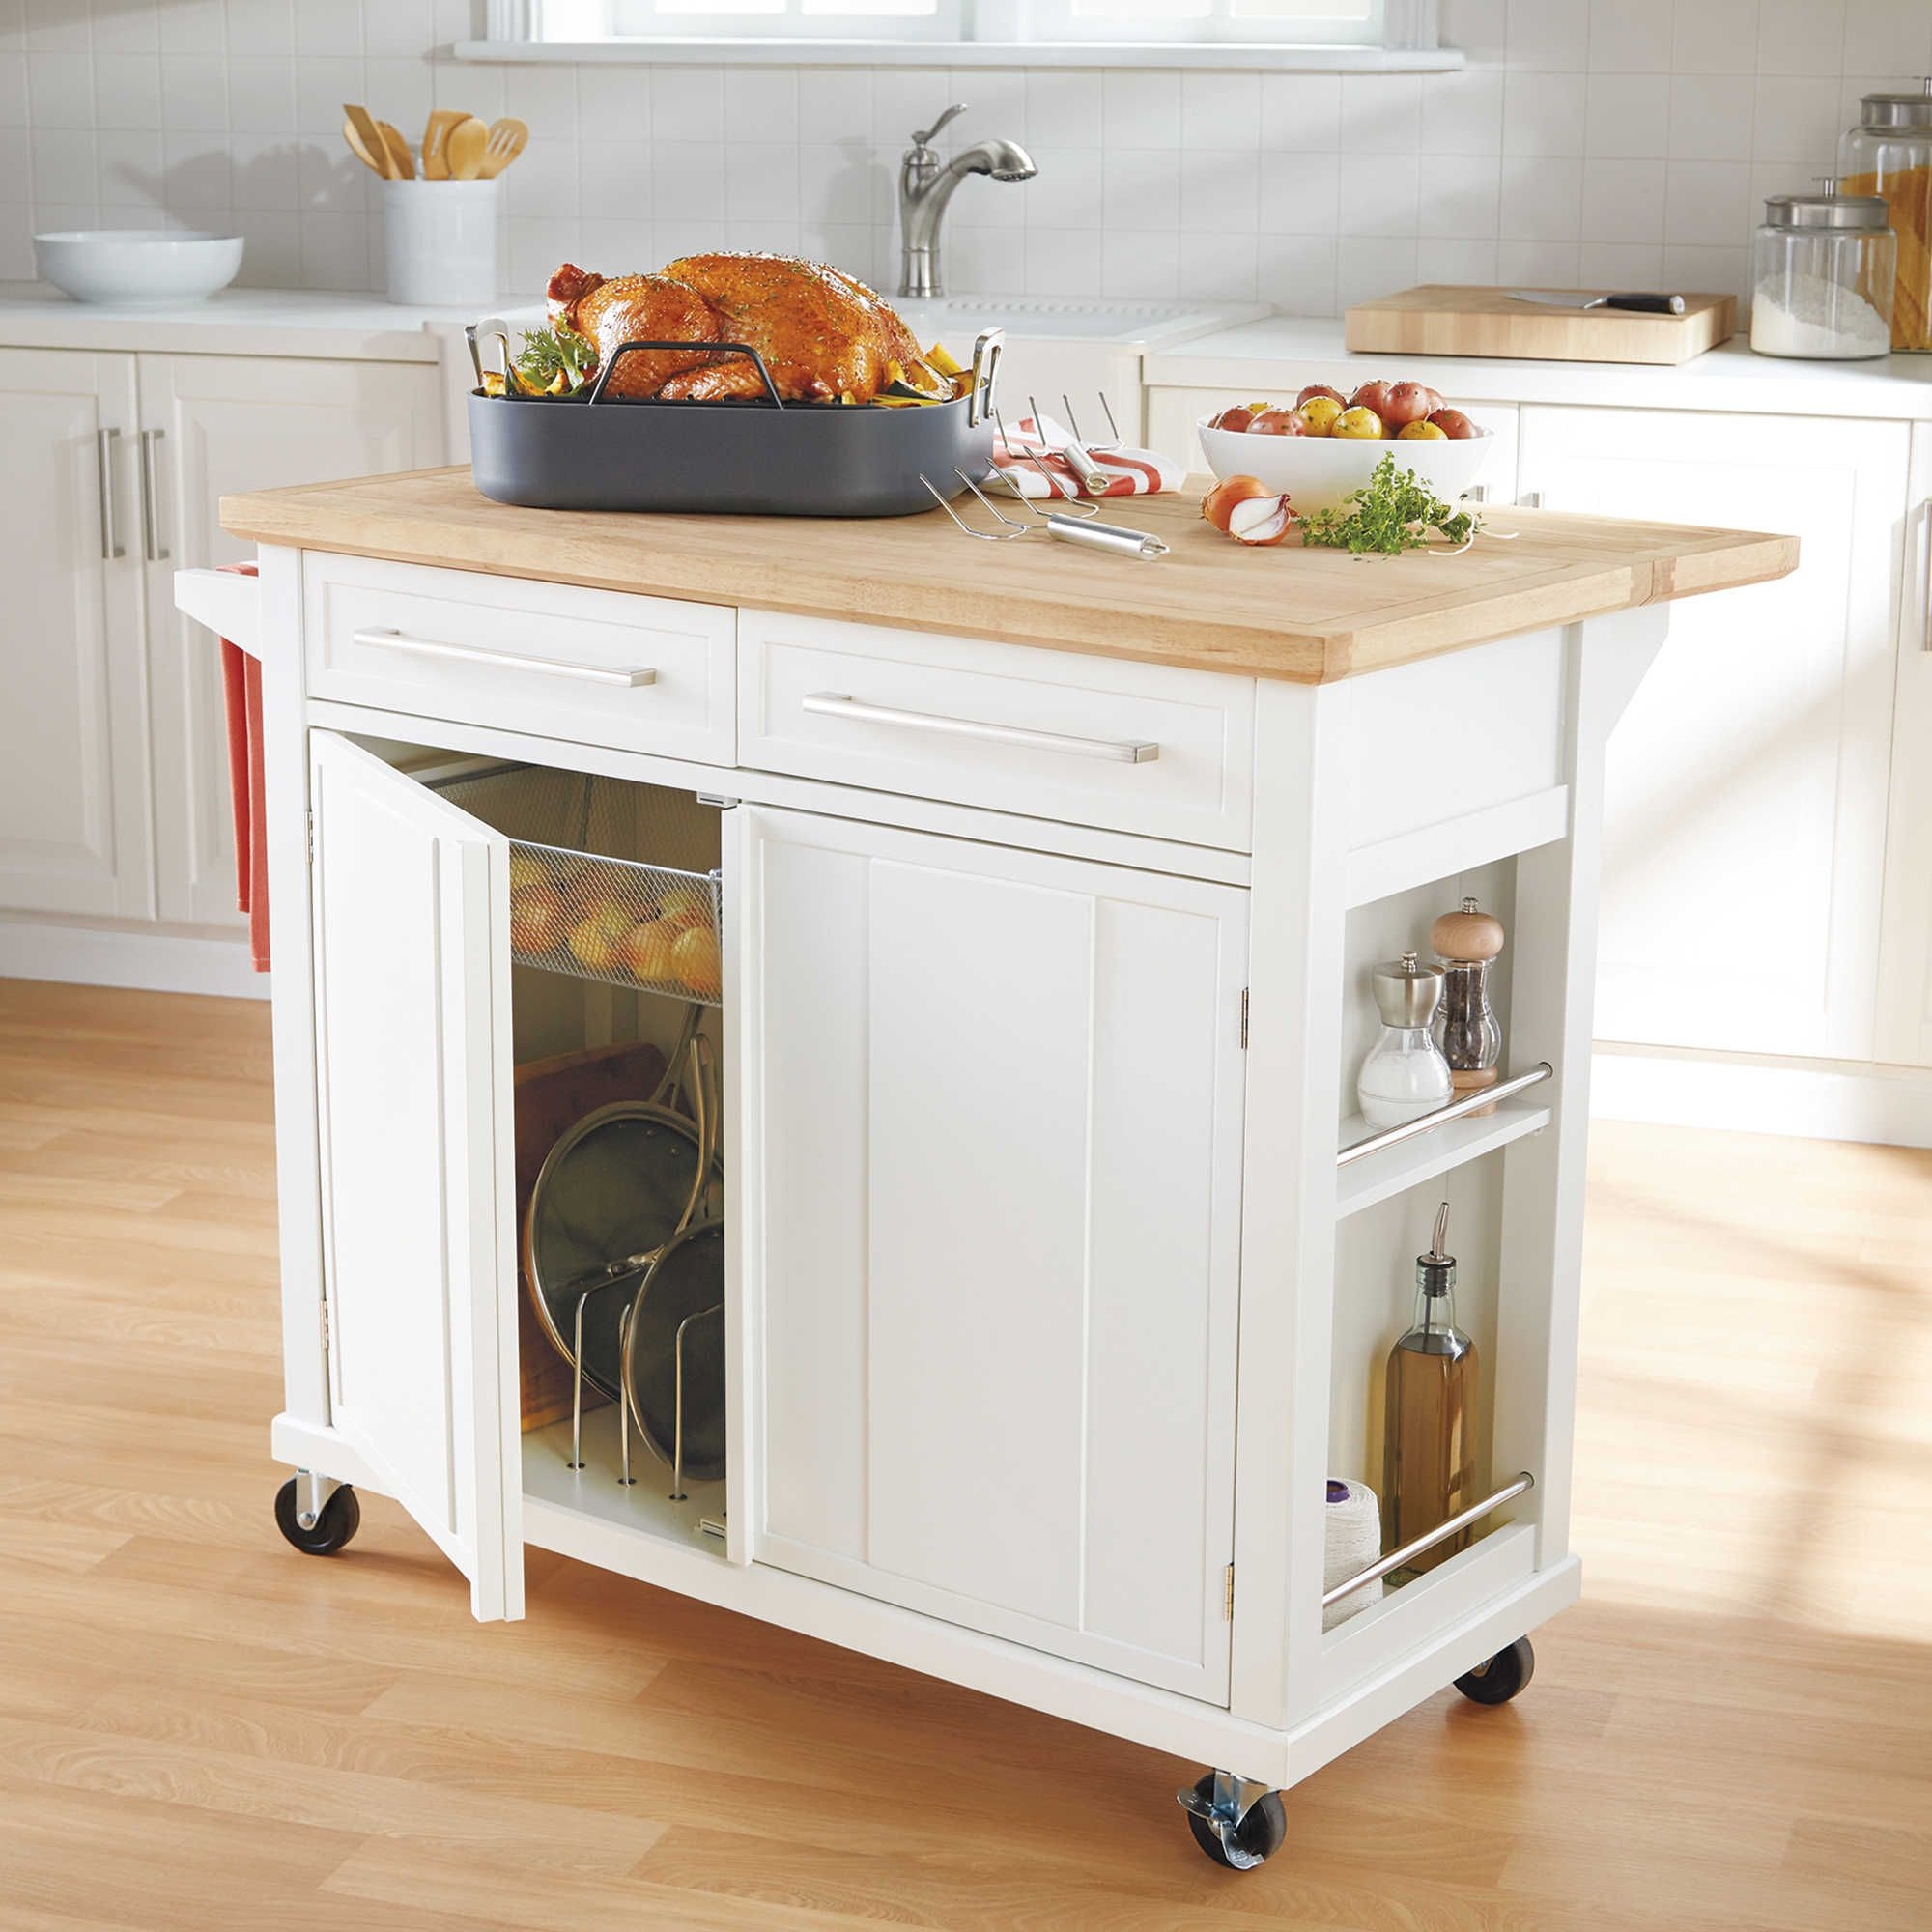 Real Küchenrollwagen Real Simple Rolling Kitchen Island In White 300 Bed Bath